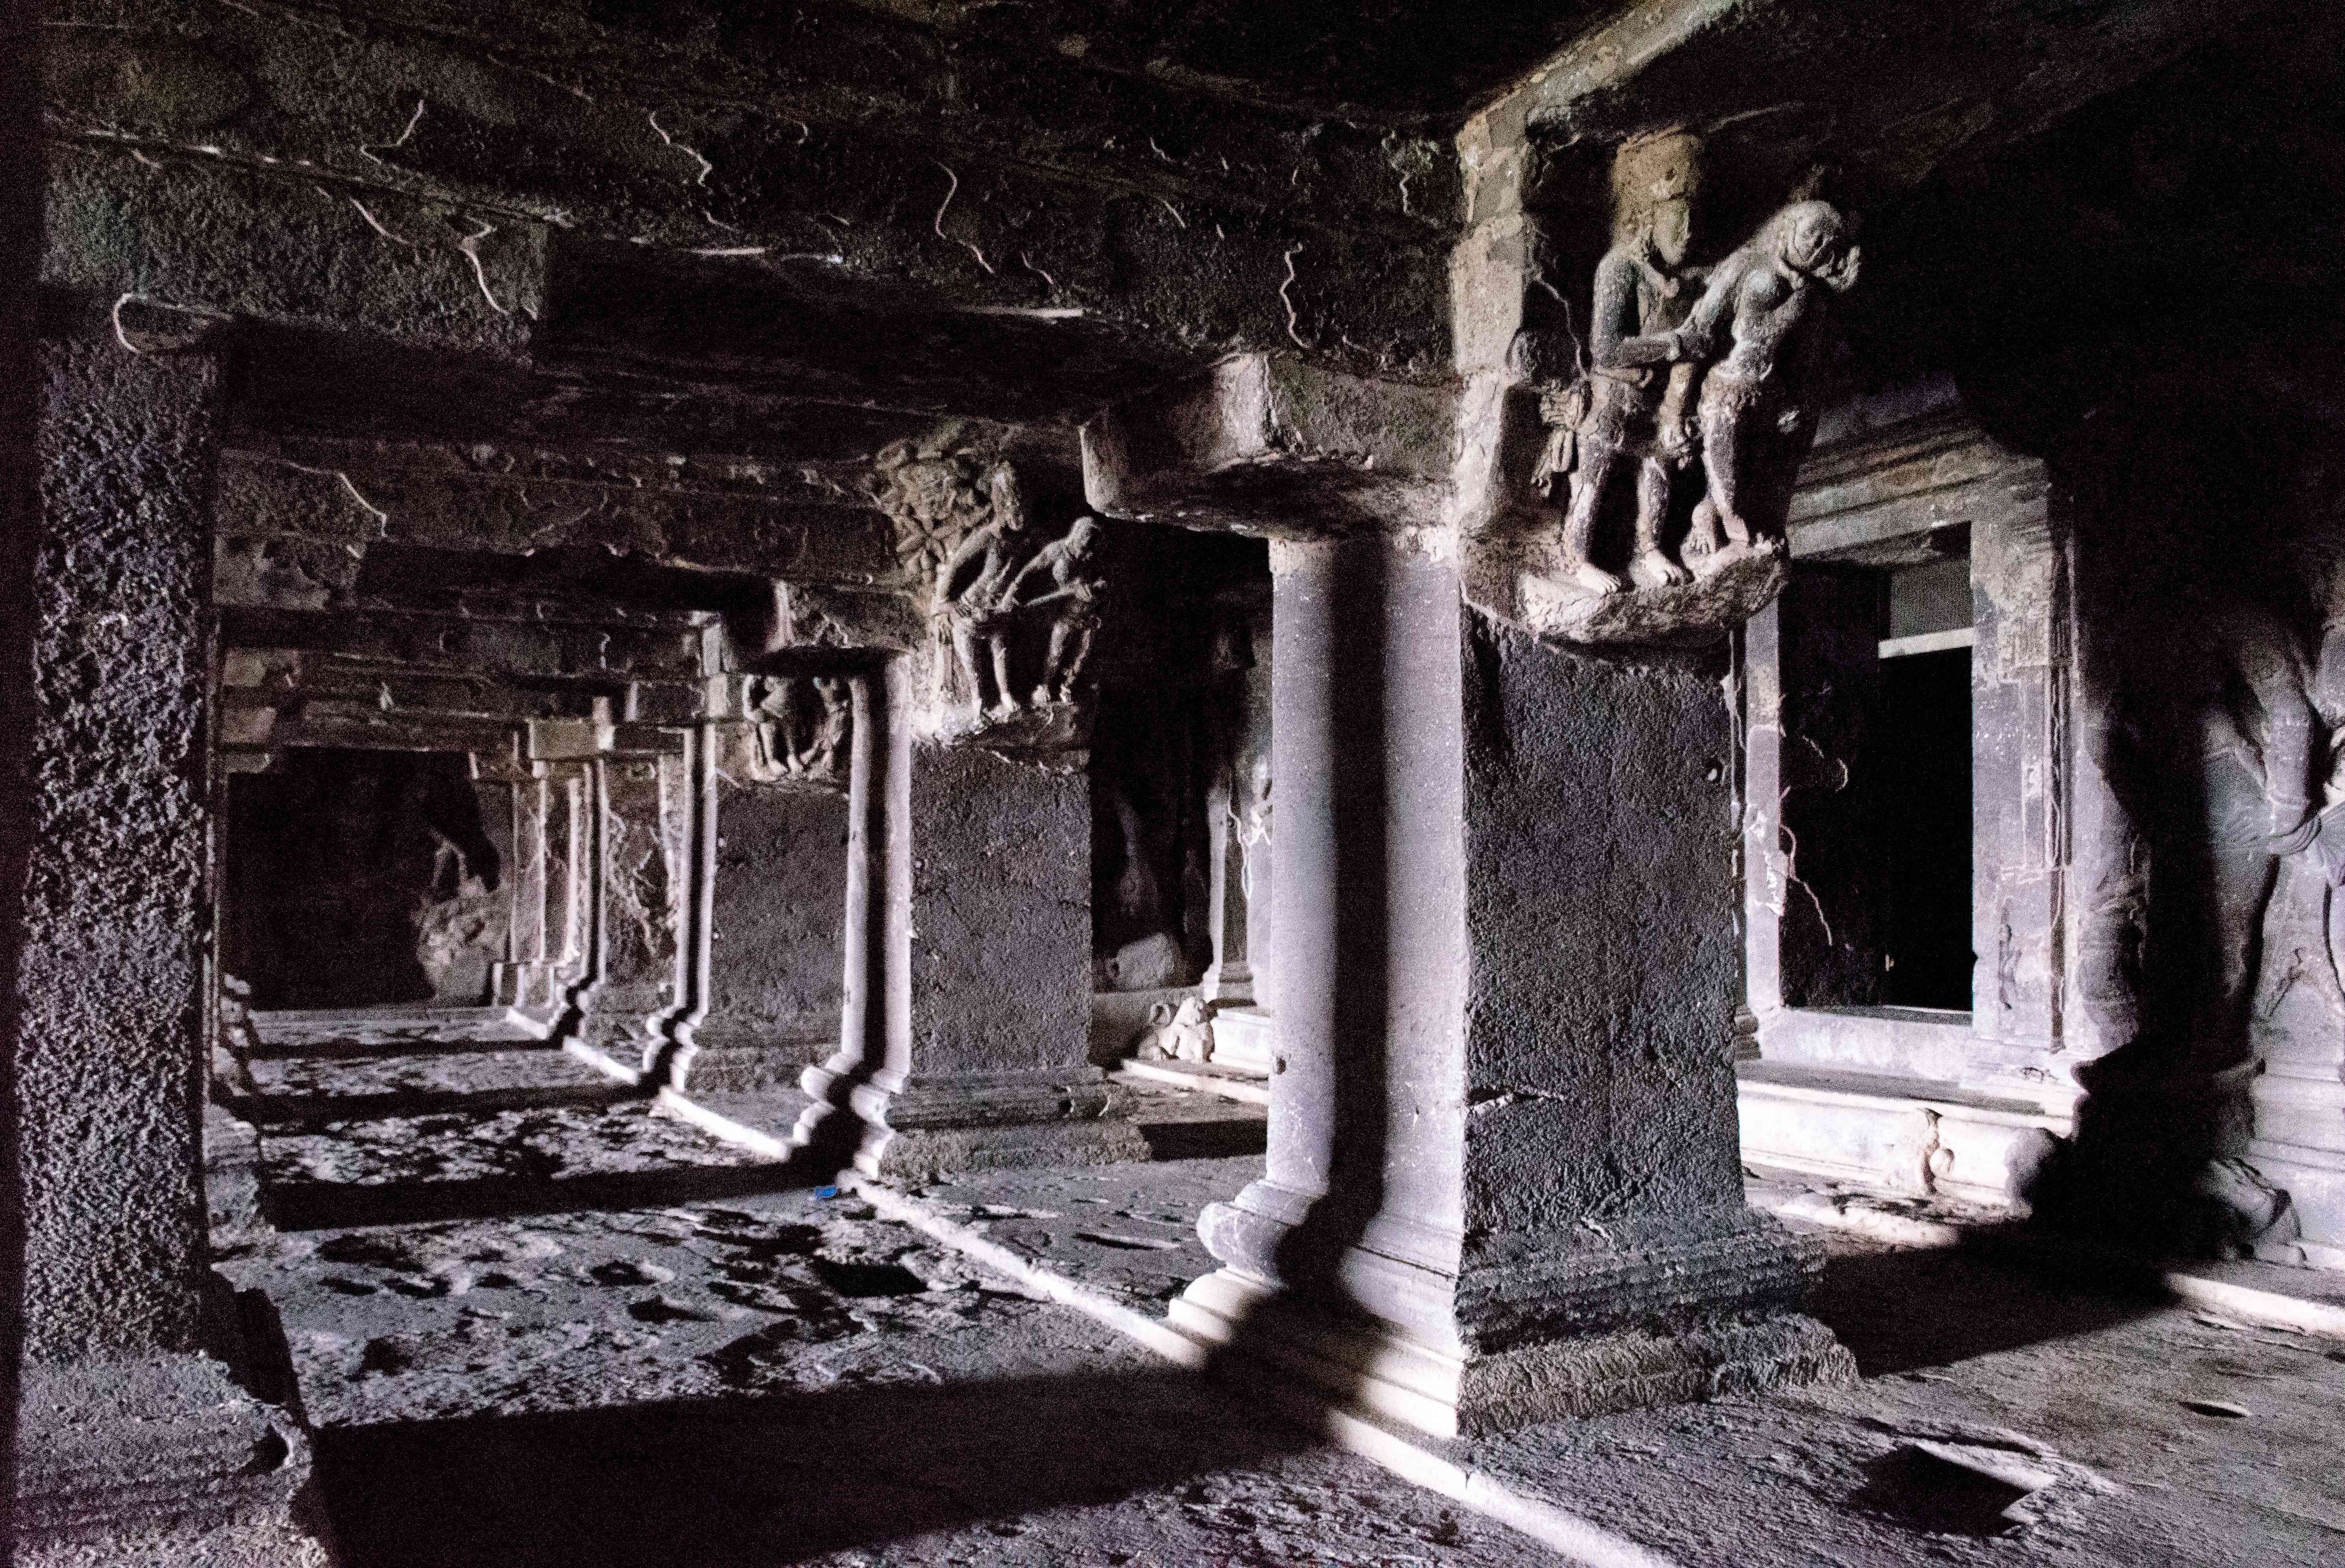 Pillars and pathways in the Ajanta Caves